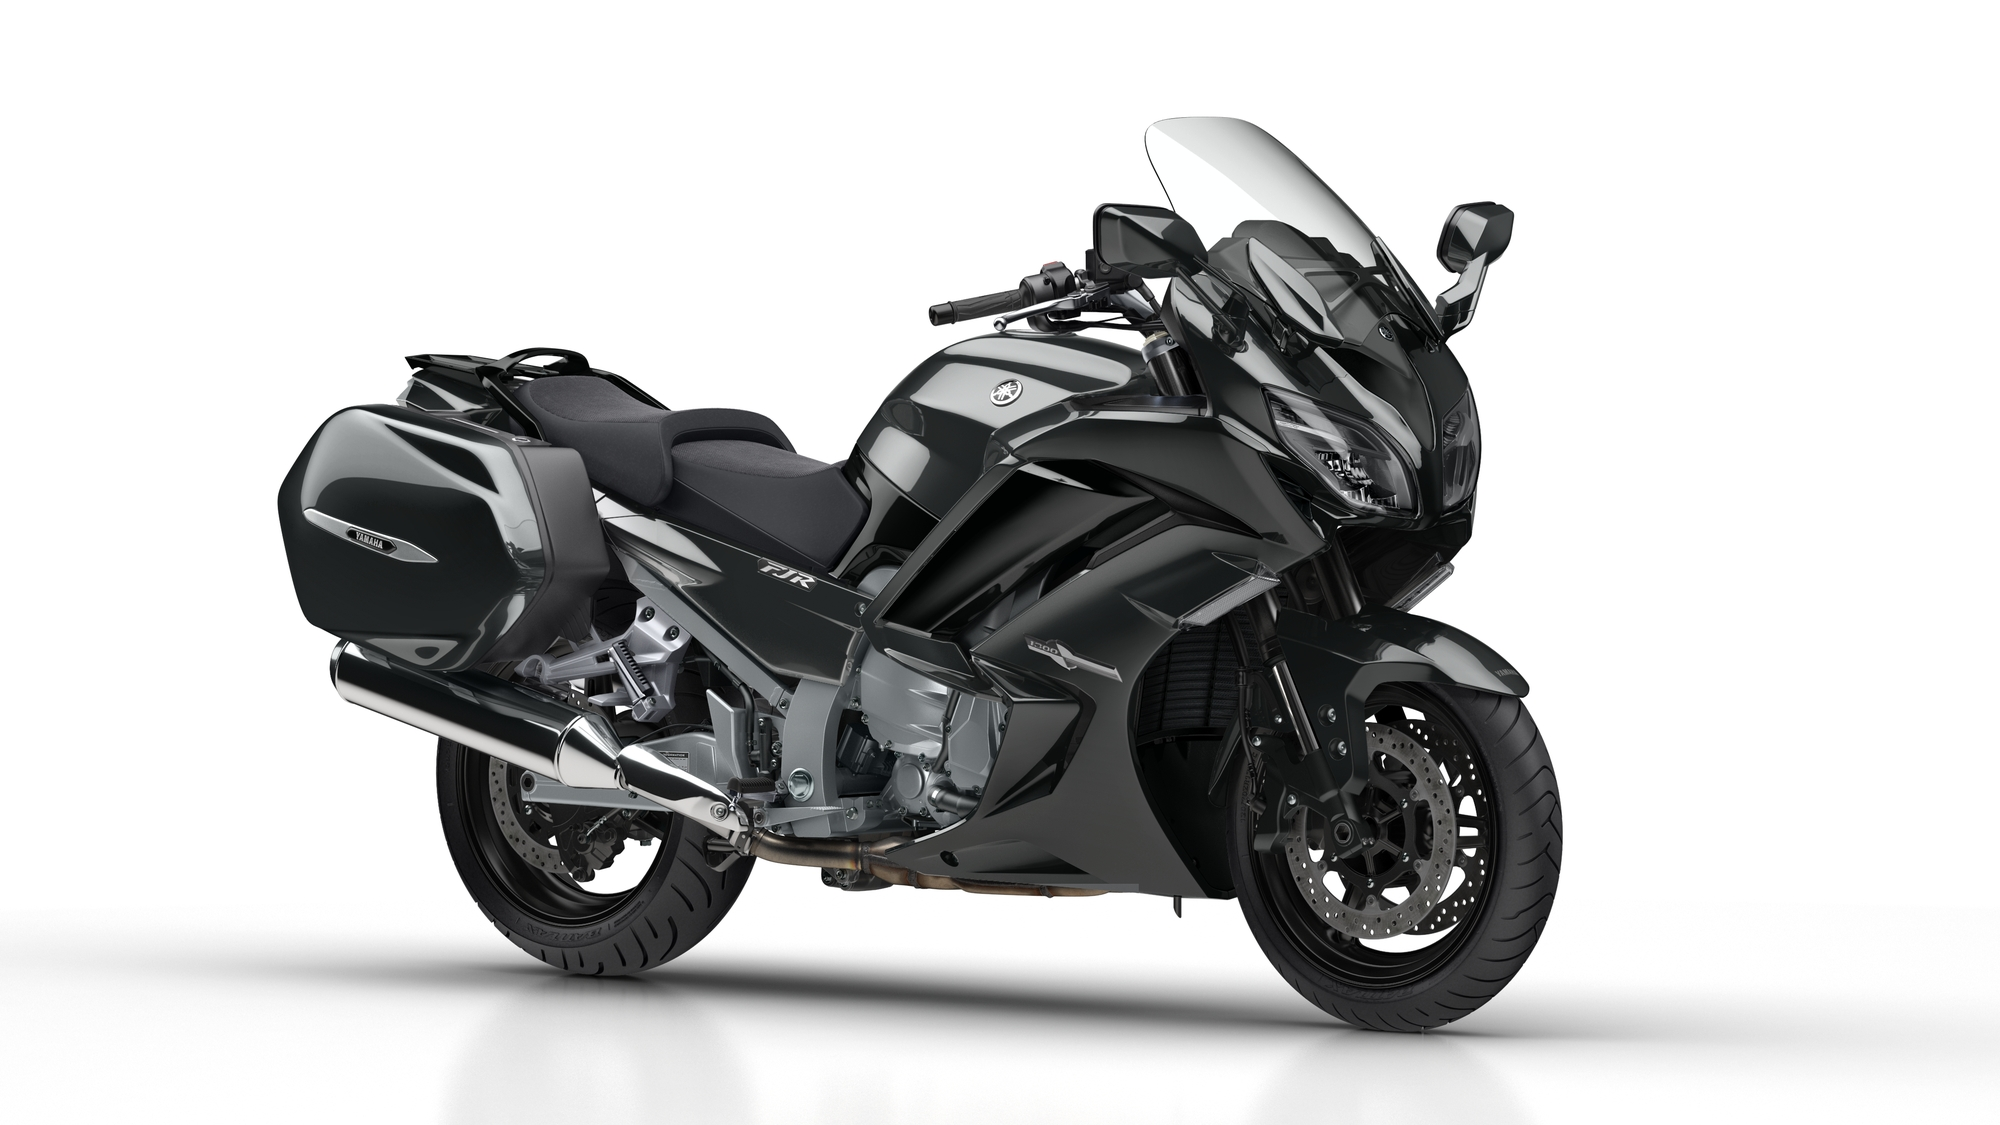 /fileuploads/Marcas/Yamaha/Motos/Desportivas de Turismo/_Benimoto-Yamaha-FJR100AS-Tech_Graphite.jpg